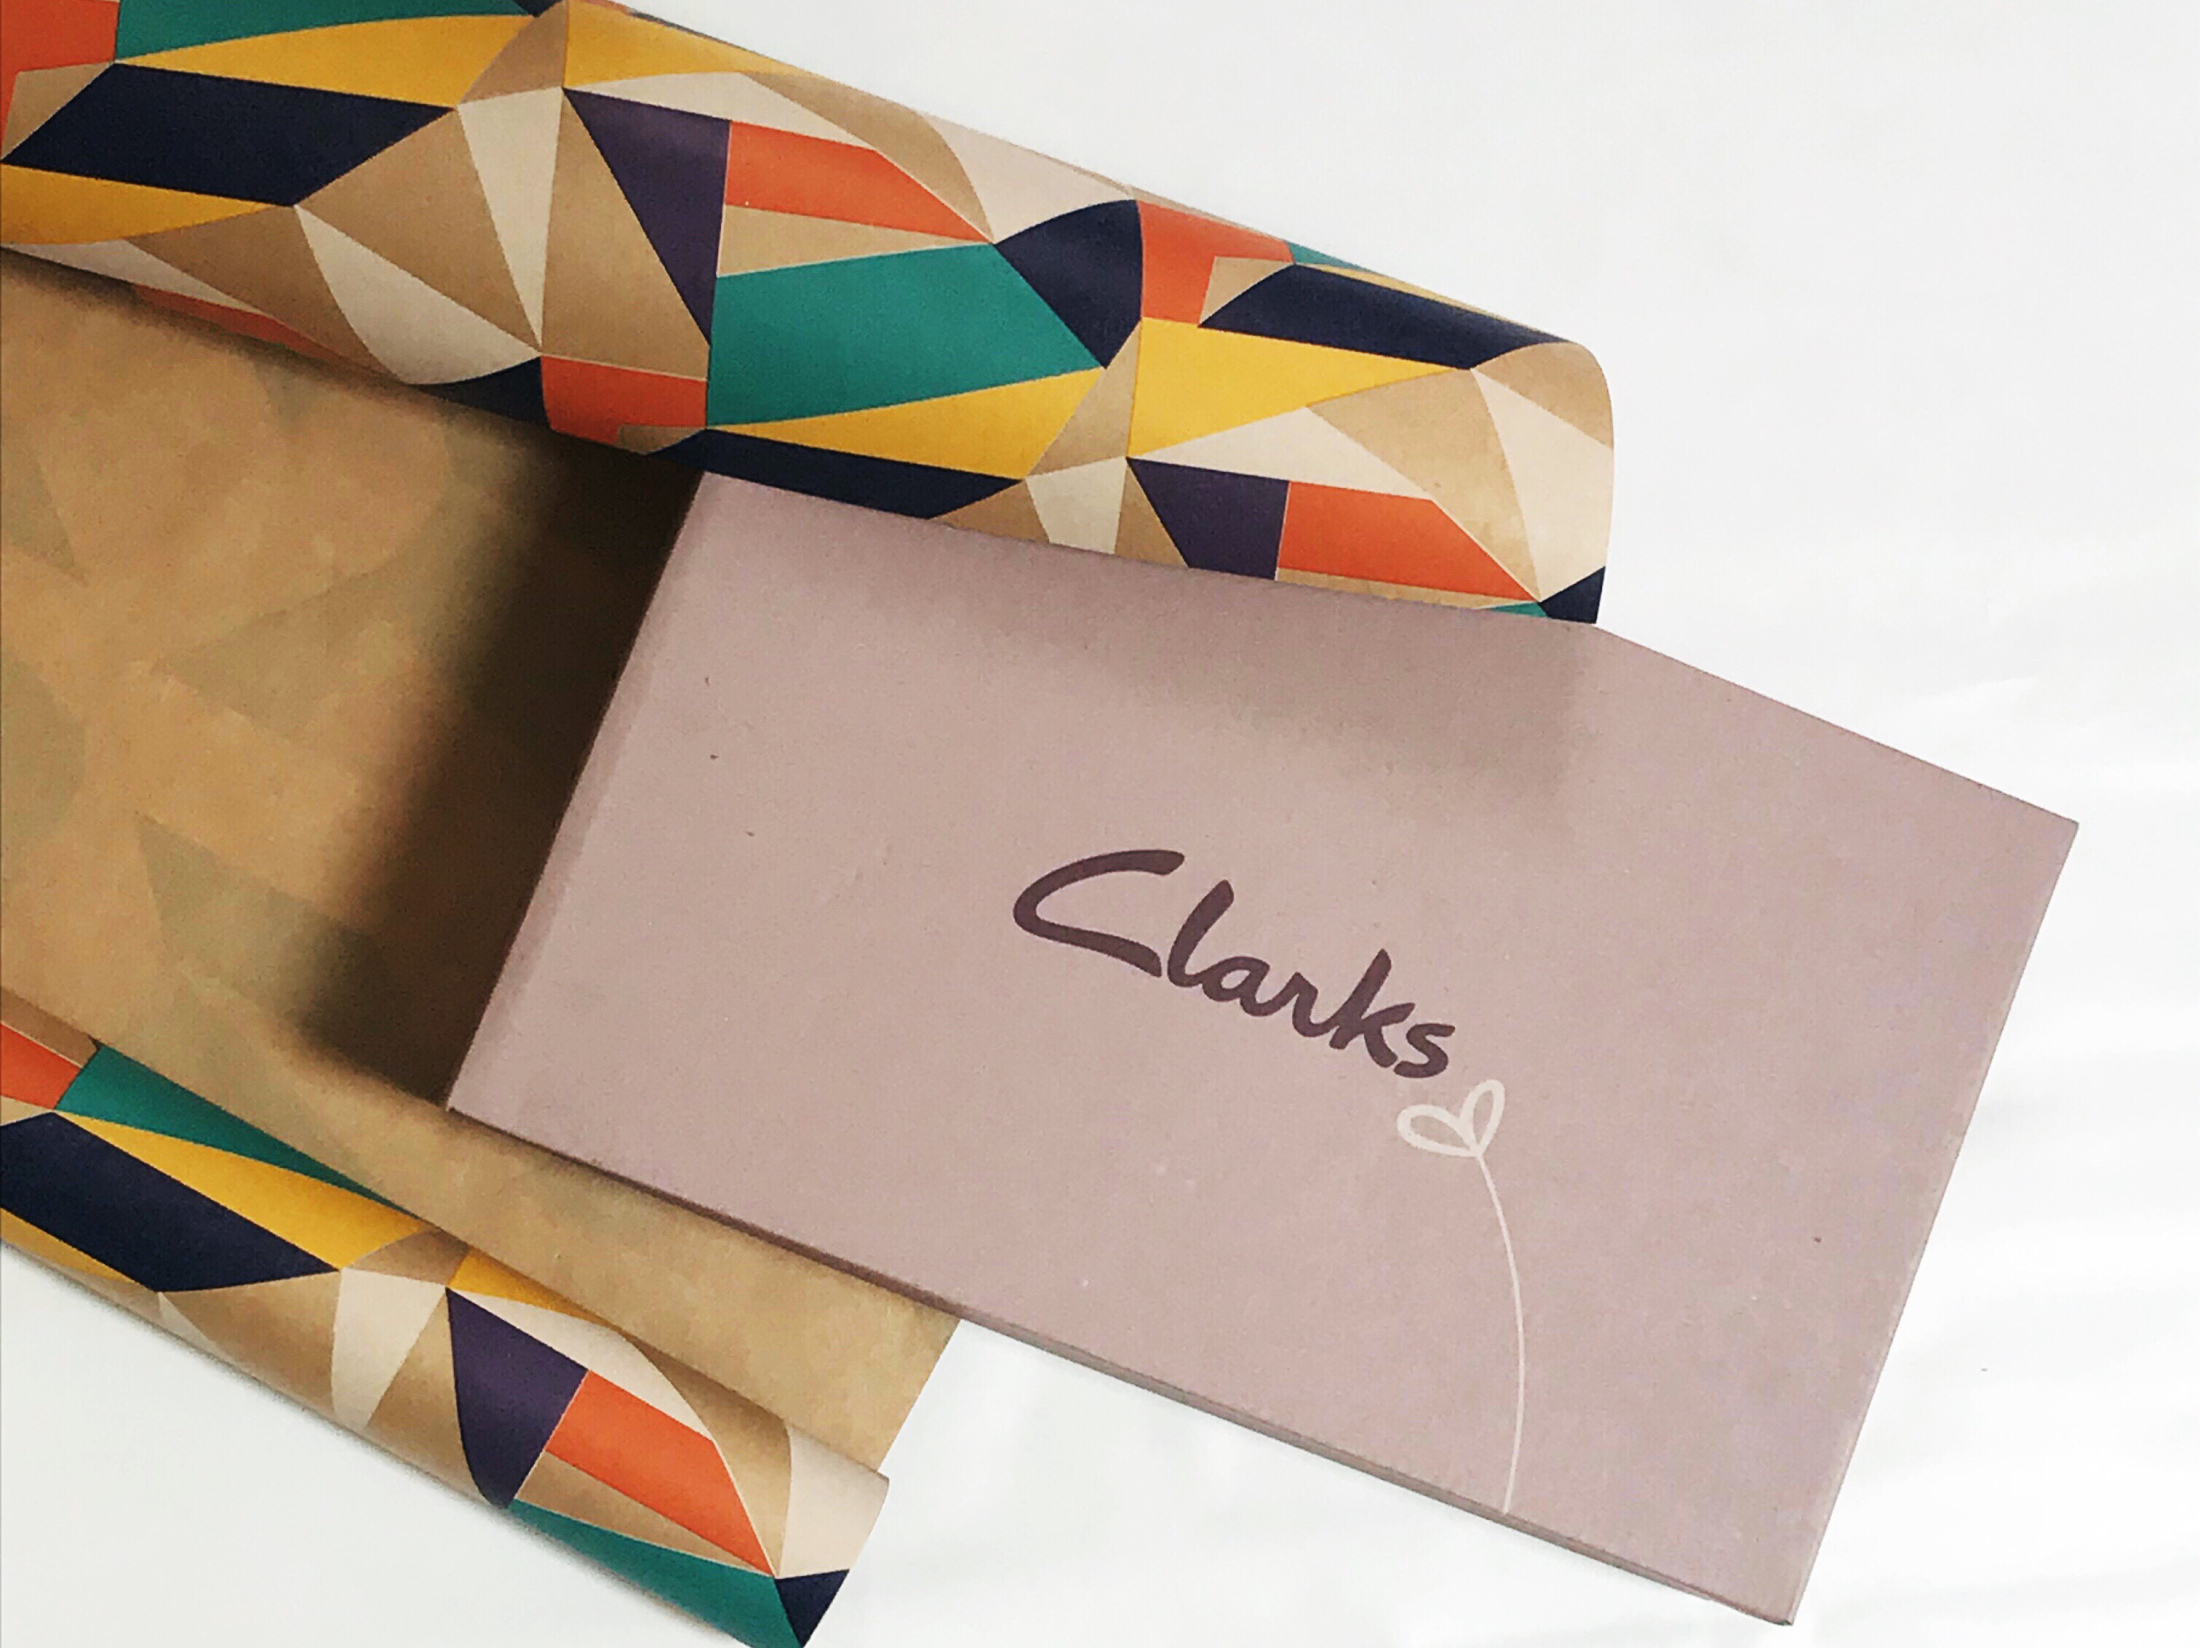 How to Upcycle a Shoe Box as a Gift Box – Easy Upcycle Project